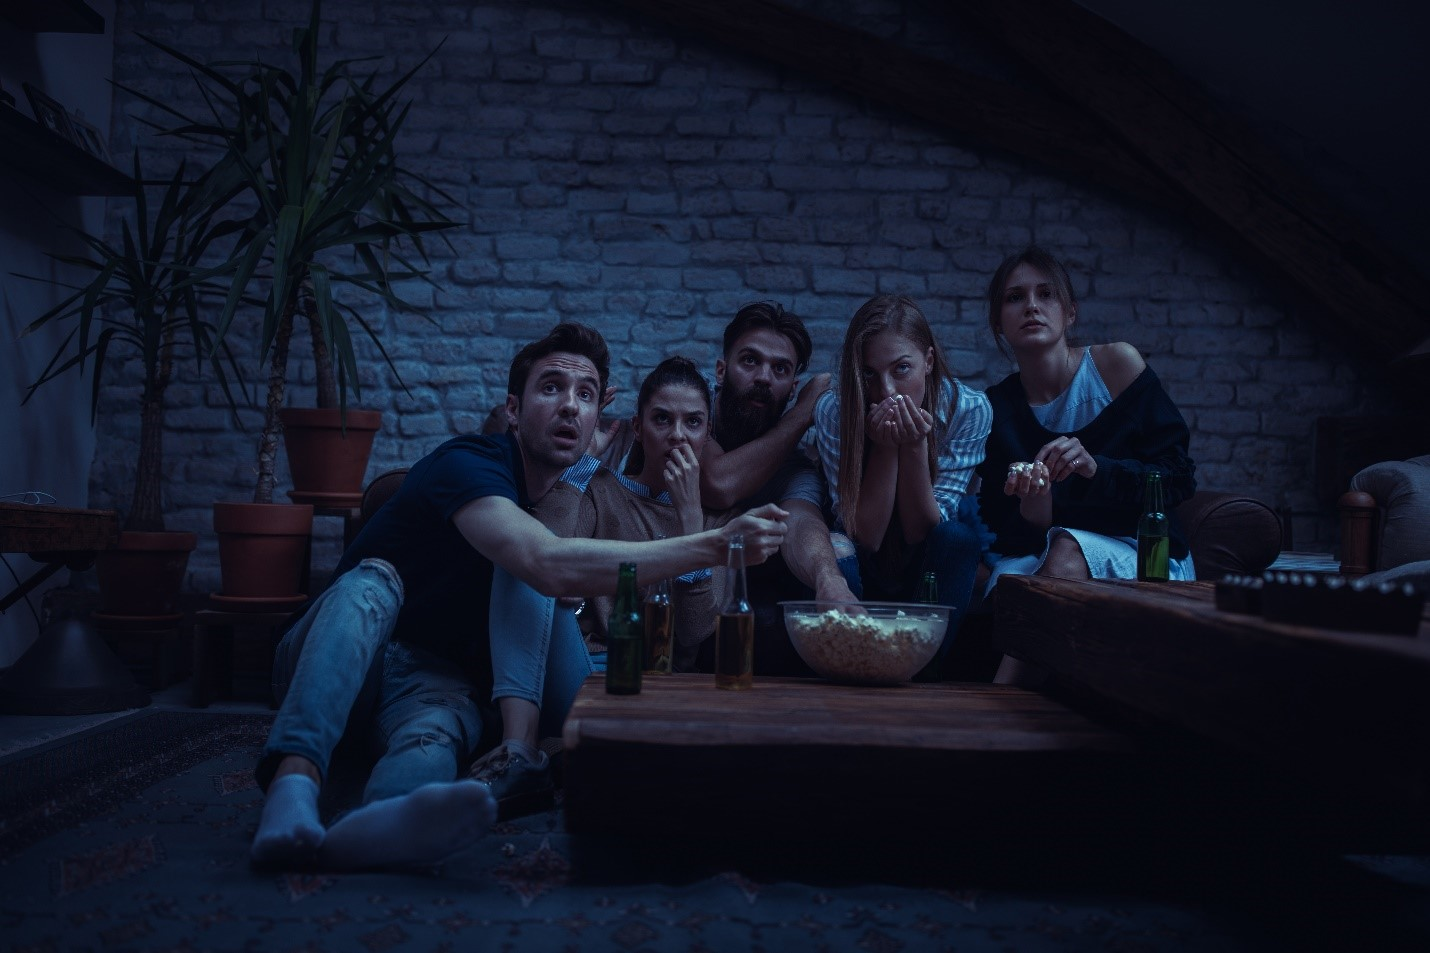 A group of people on a couch watching television and looking frightened